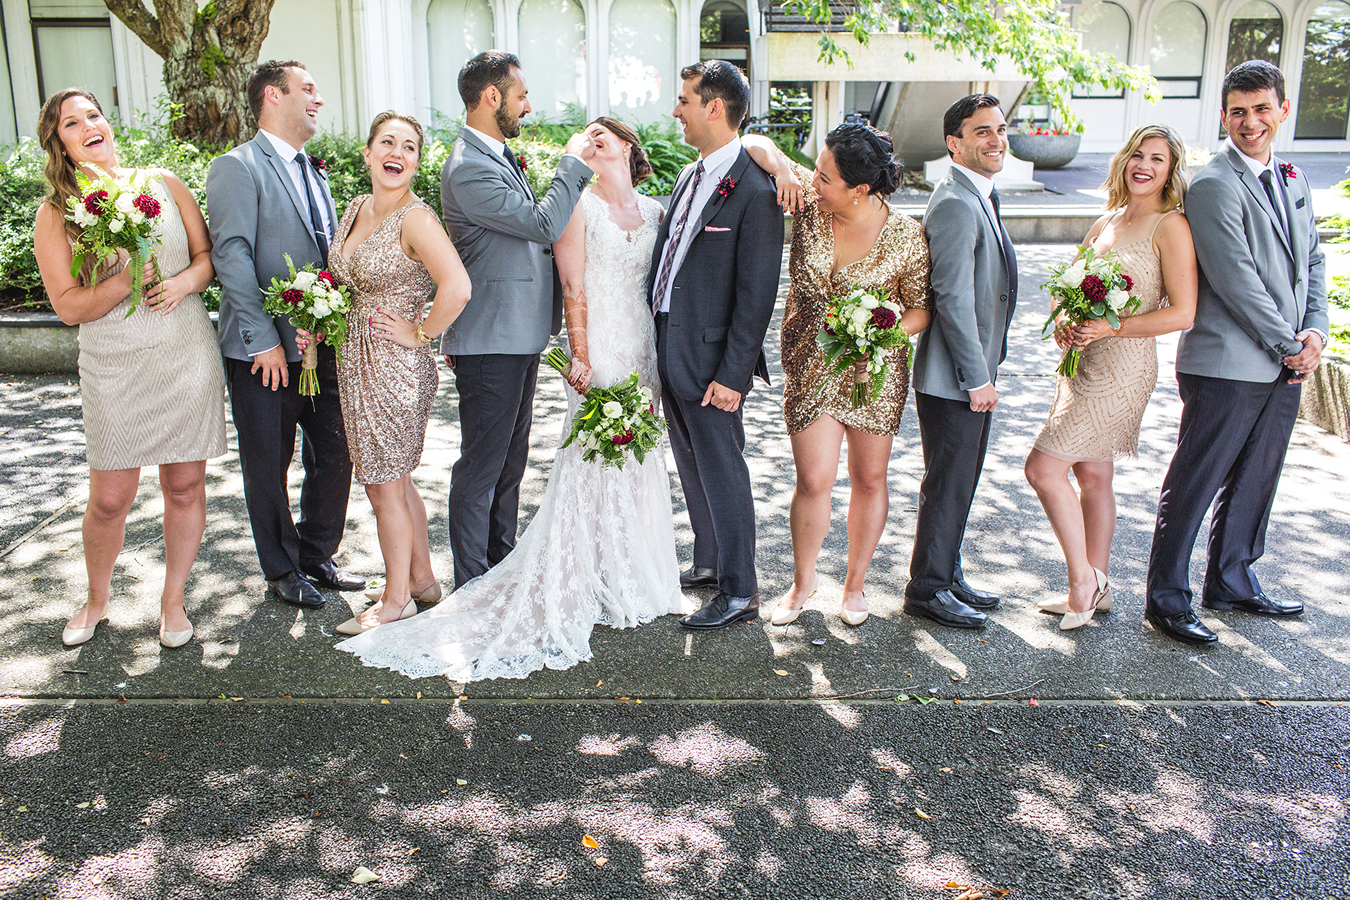 Bridal party laughing together at Vanier Park in Vancouver